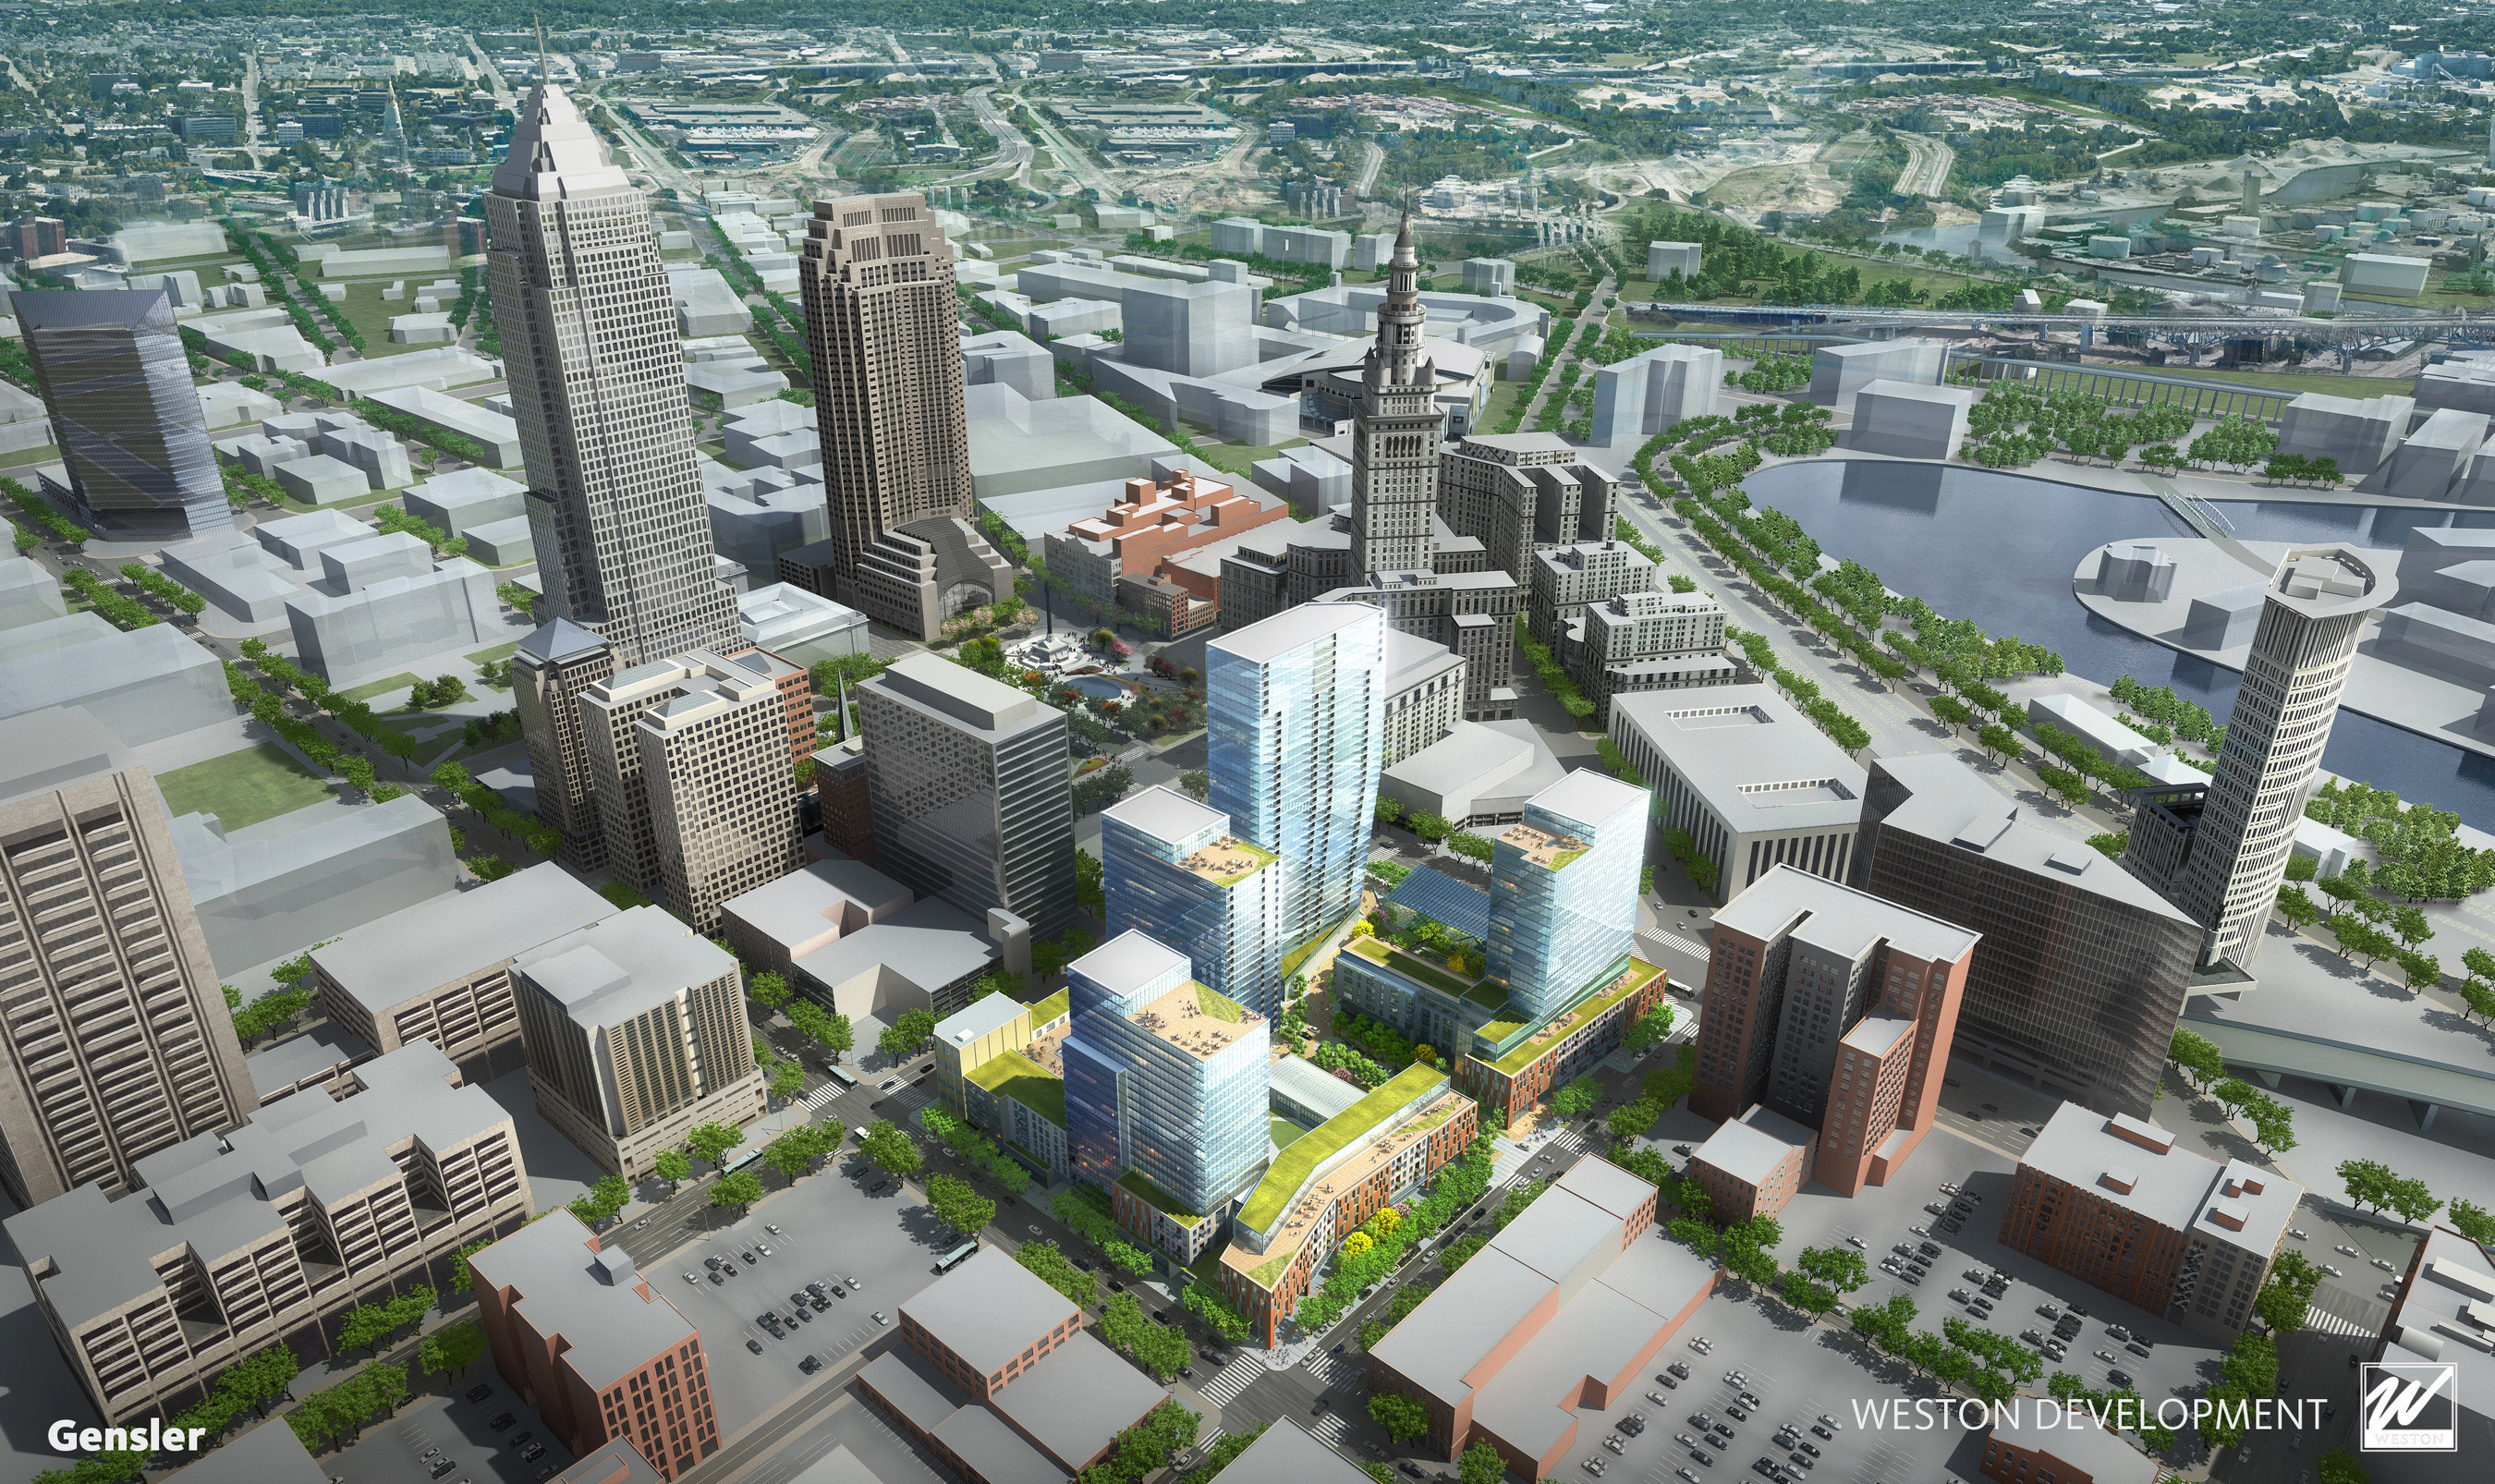 One of the best urban development sites in the country to be transformed into new walkable neighborhood in center of Downtown Cleveland